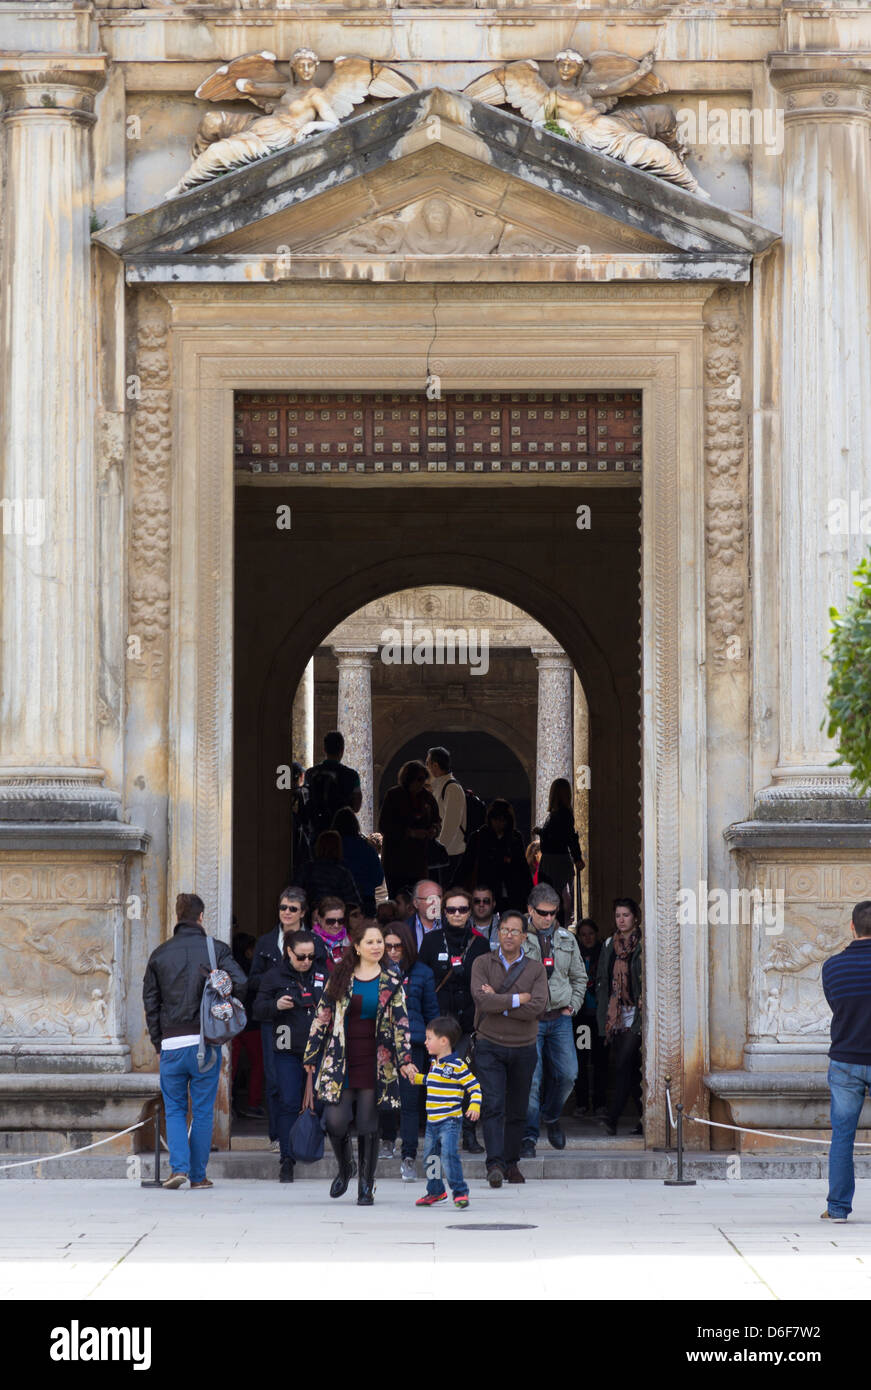 A crowd of tourists emerge from the entrance to Palacio de Carlos V, Alhambra, Granada - Stock Image